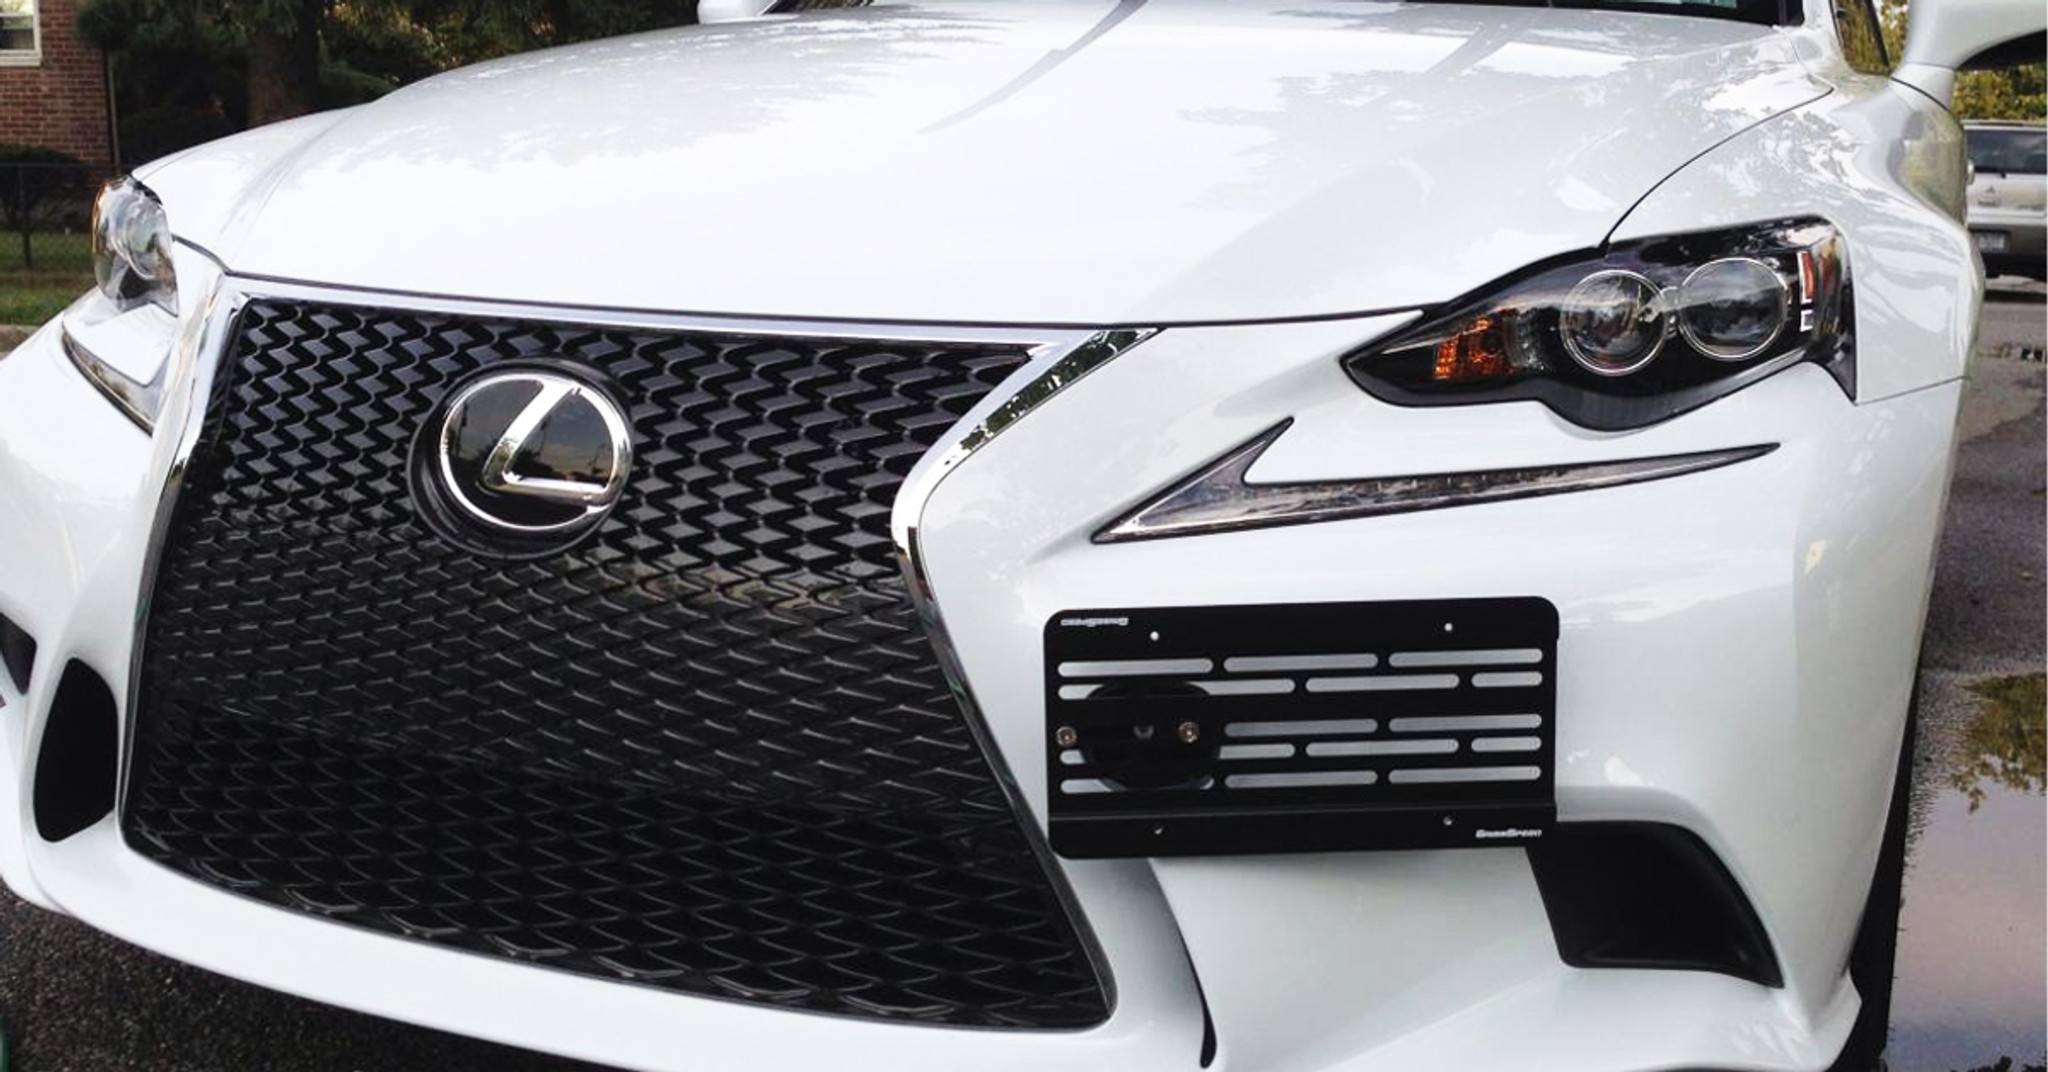 Replace Lx1068103 Front License Plate Bracket